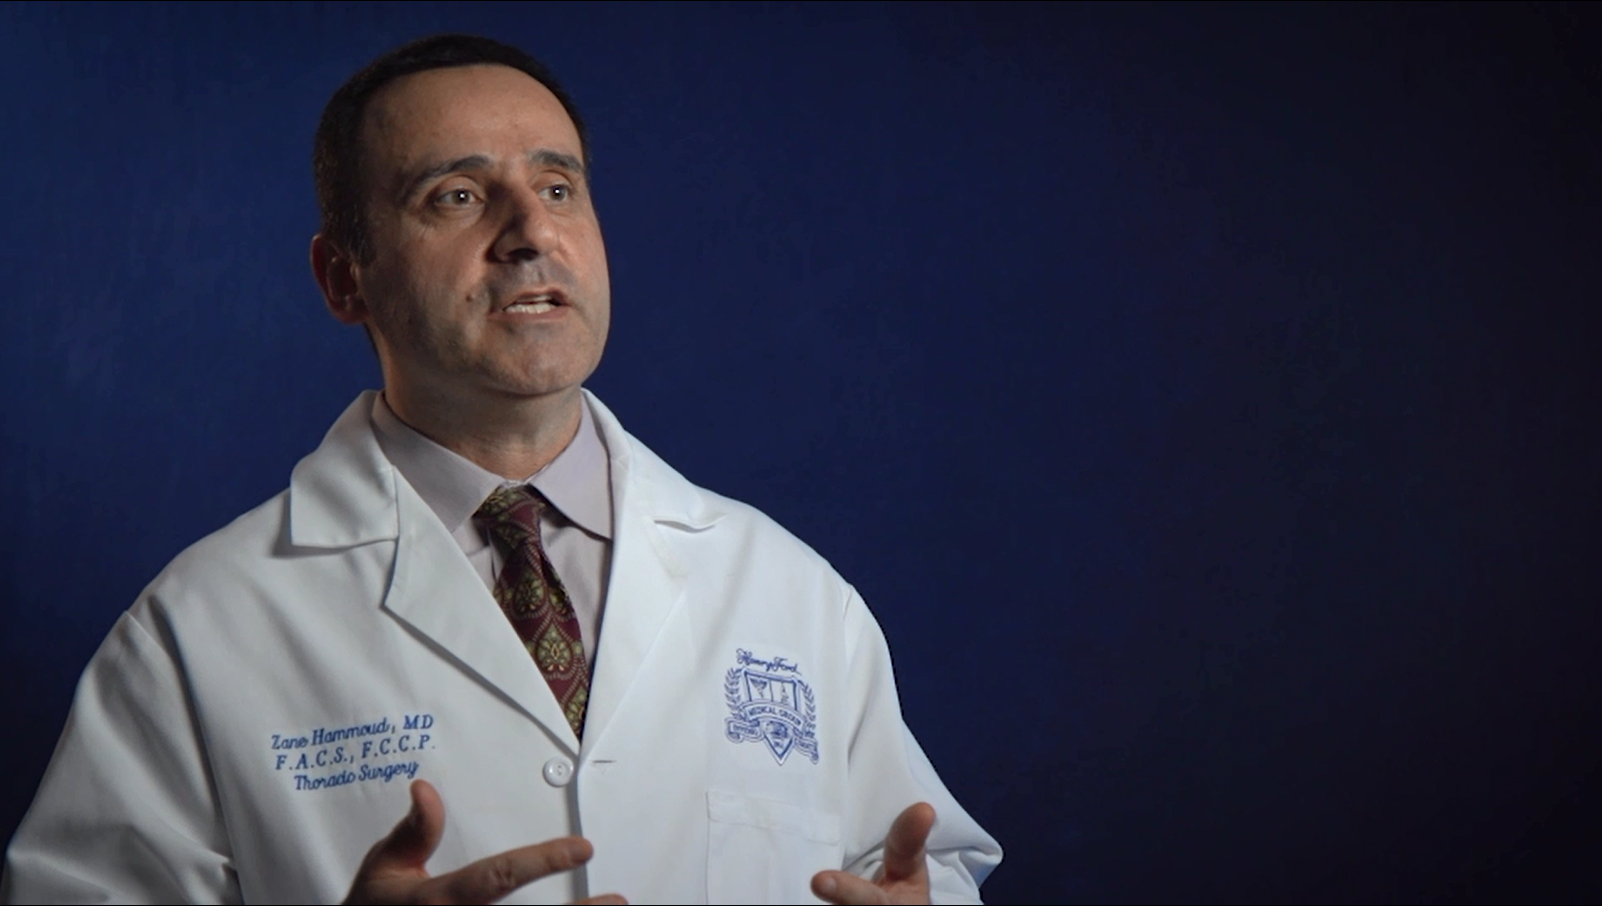 Dr. Hammoud talks about his practice